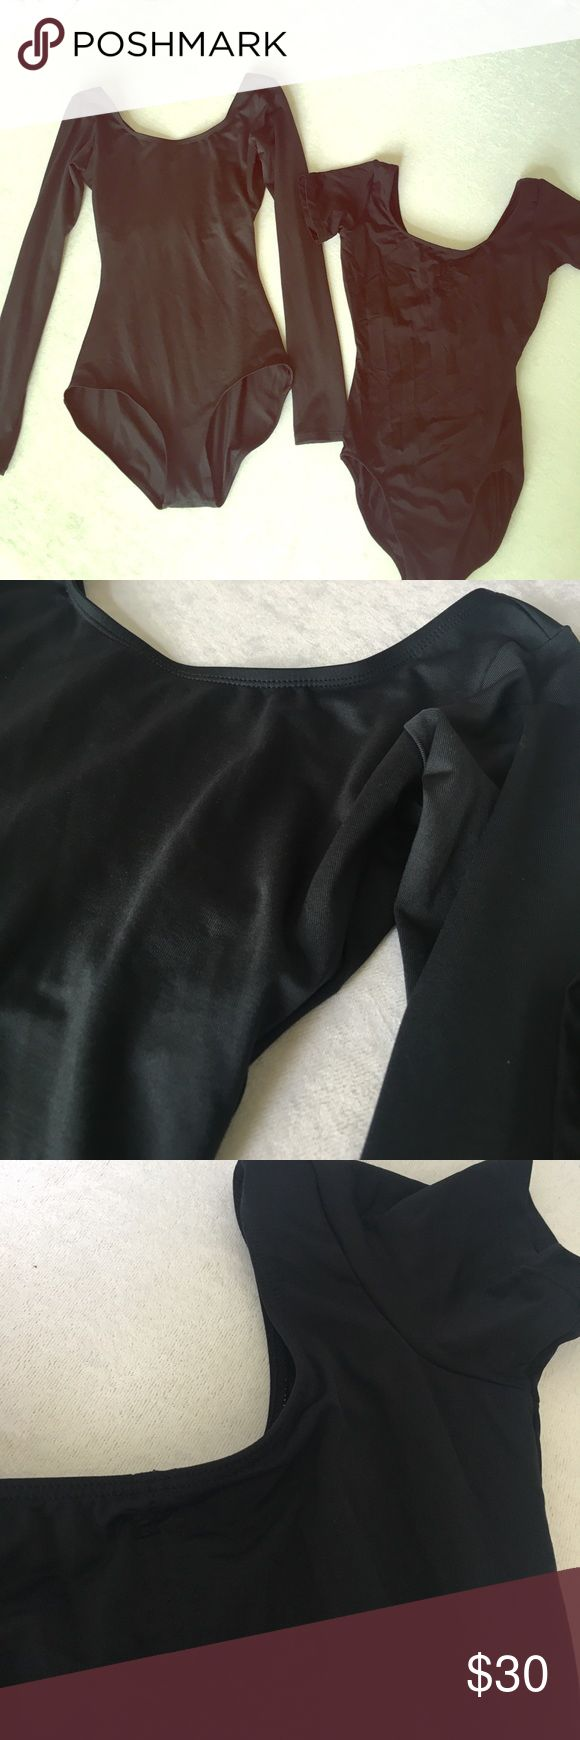 Women's ballet leotards + shoes Two black ballet leos • 81% meryl 19% lycra (material on both has shine)  • like new • one long sleeve • one short like cap sleeve • one pair Capezio 7 1/2 ballet shoes *I wore these for a few ballet classes but they're especially cute as an outfit with shorts, skirts, etc.! Tops